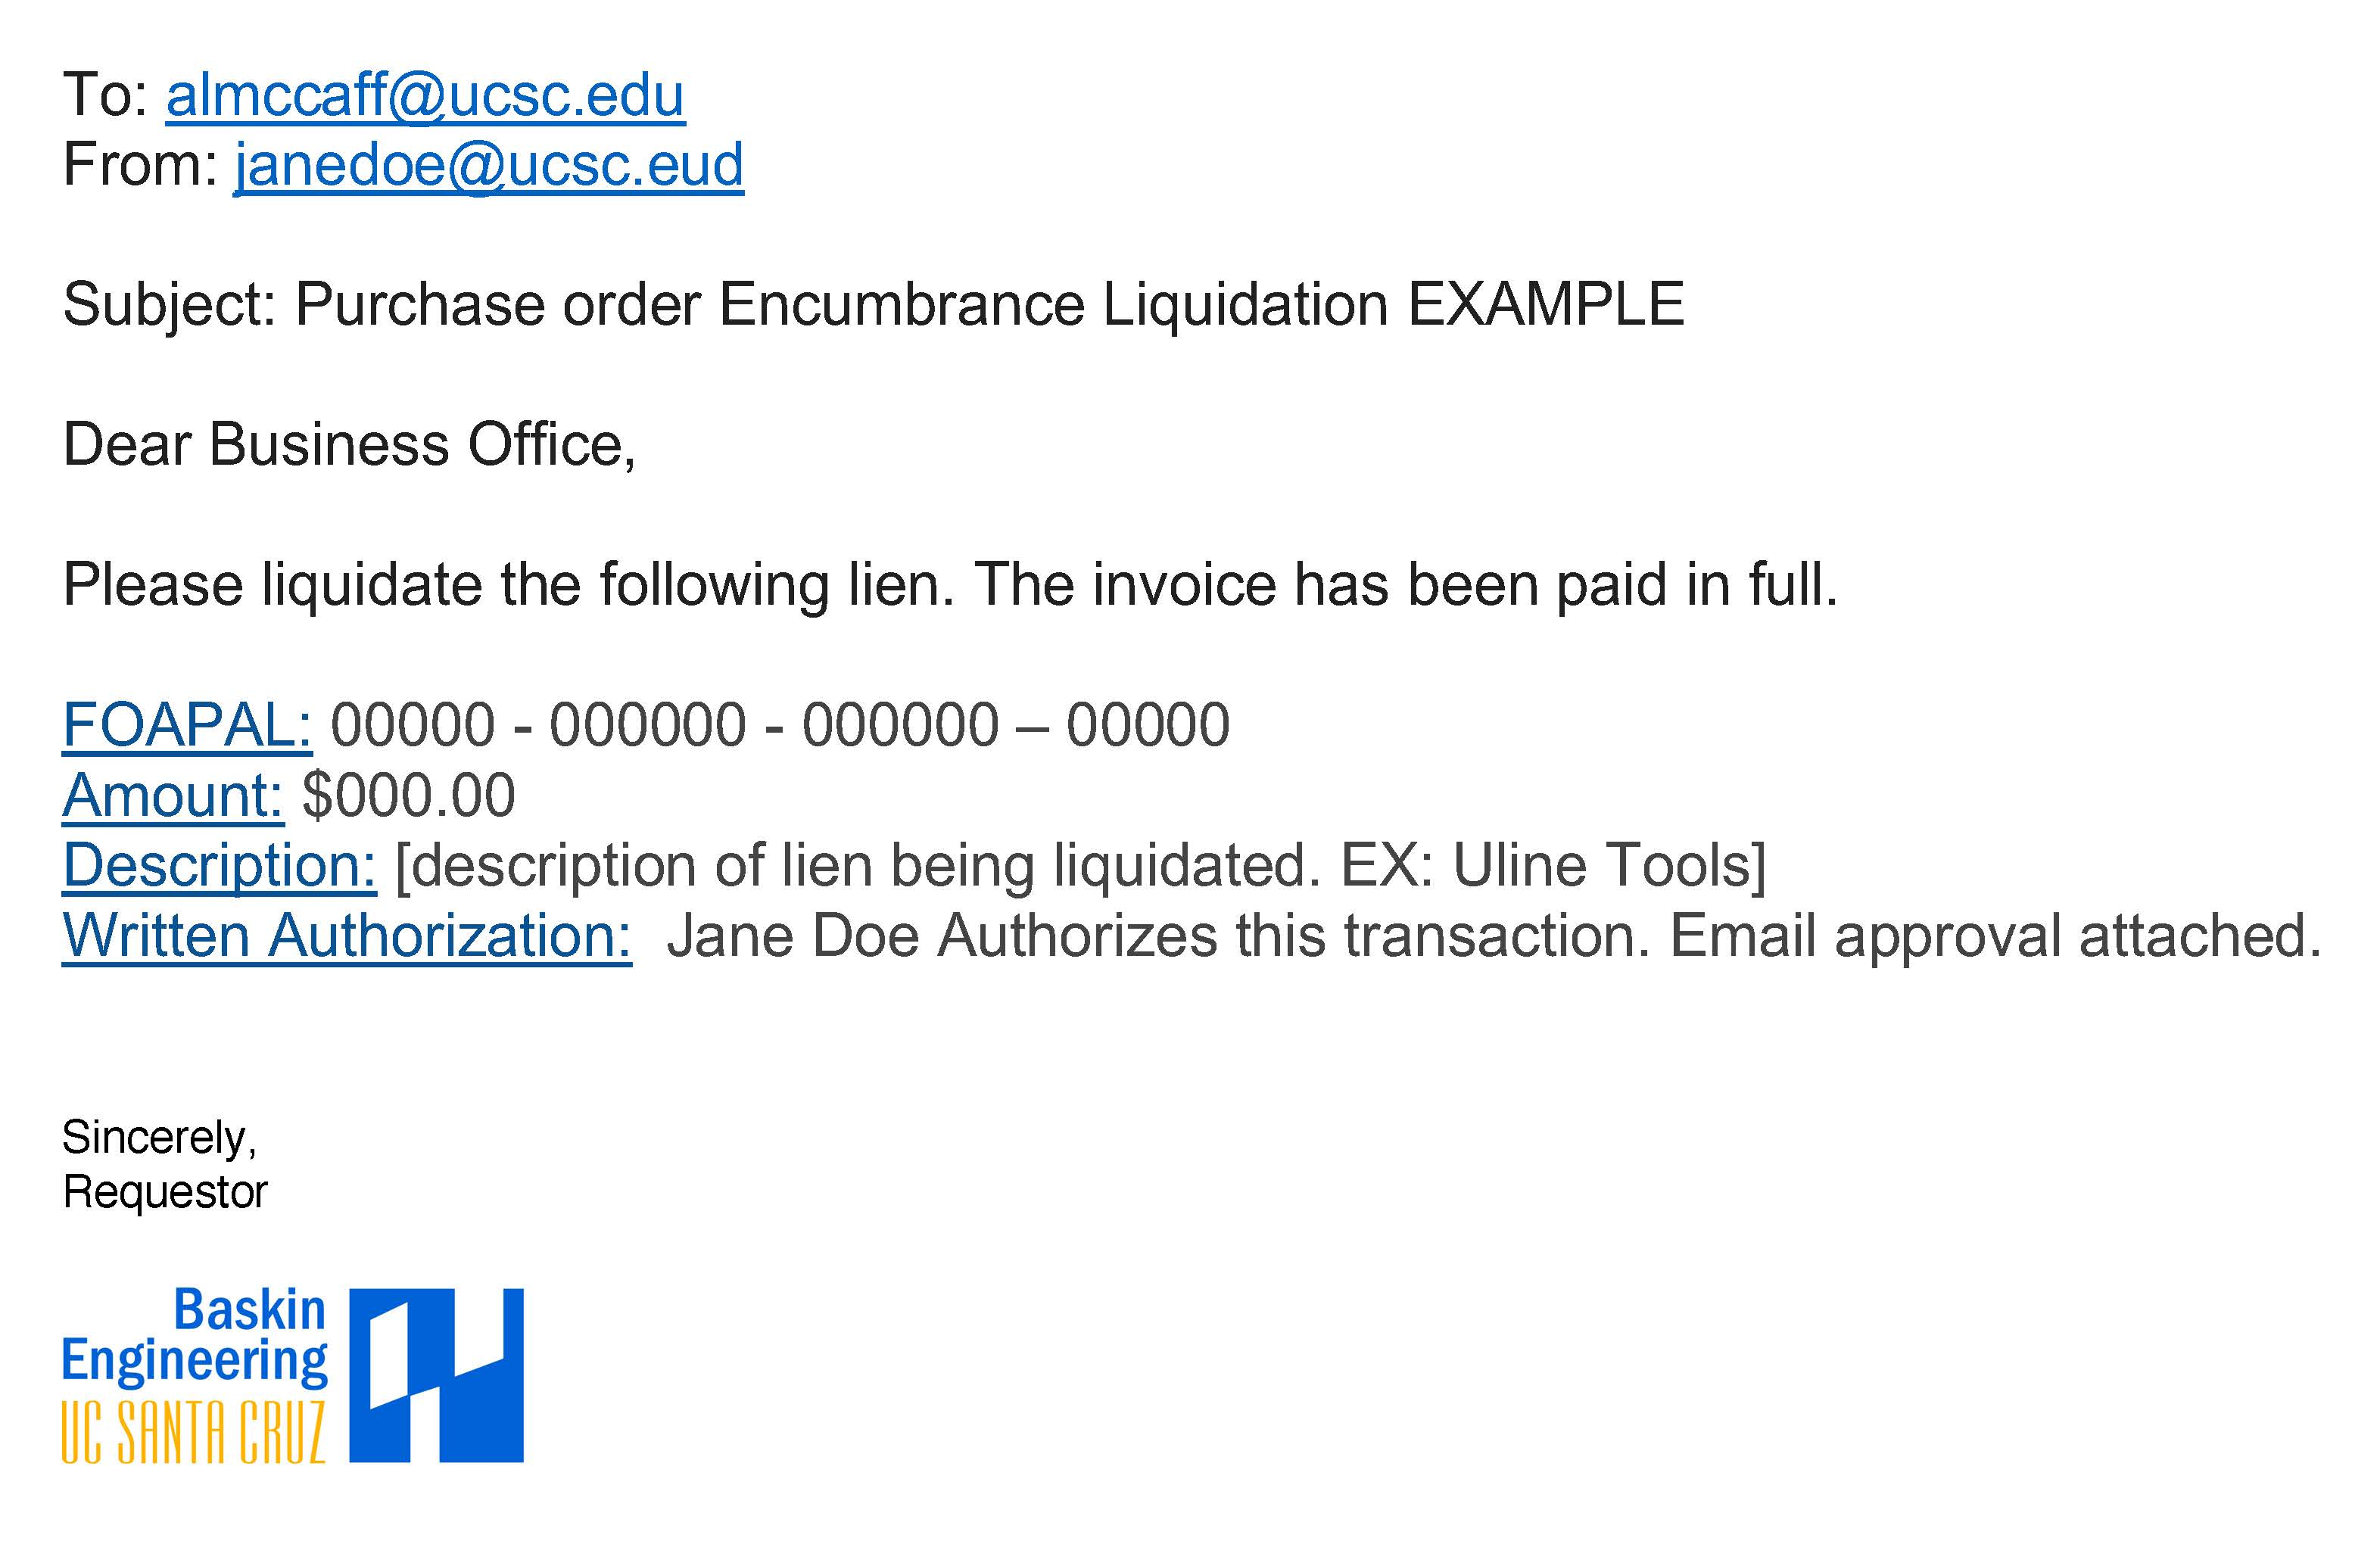 Example of Purchase Order Encumbrance Liquidation Email